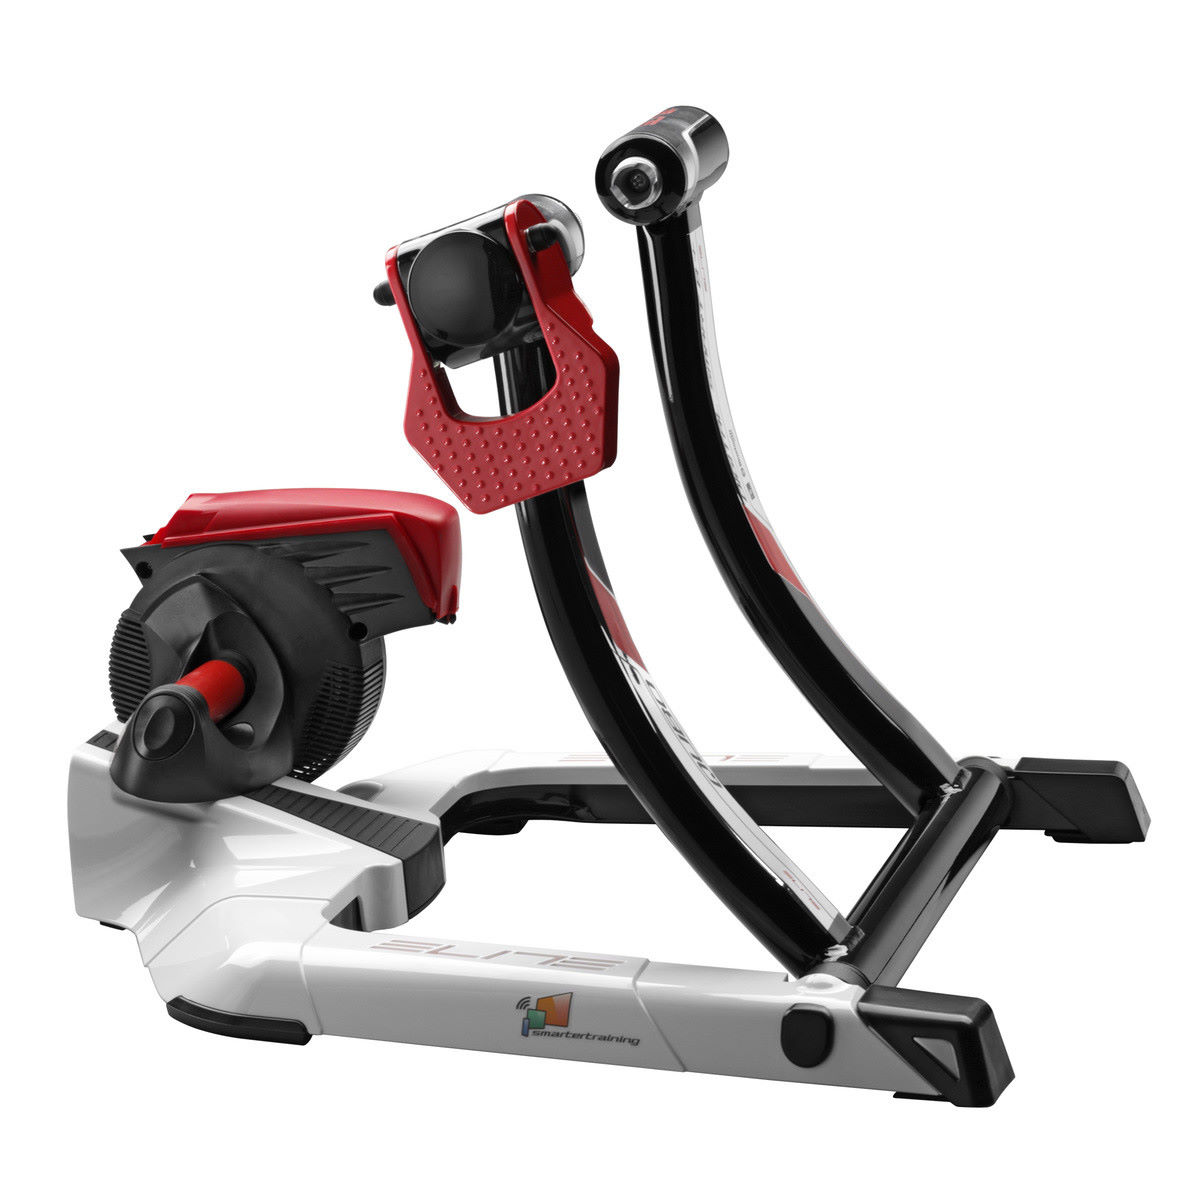 Home trainer Elite Qubo Digital Smart B+ - Taille unique Noir Home Trainer et rouleaux